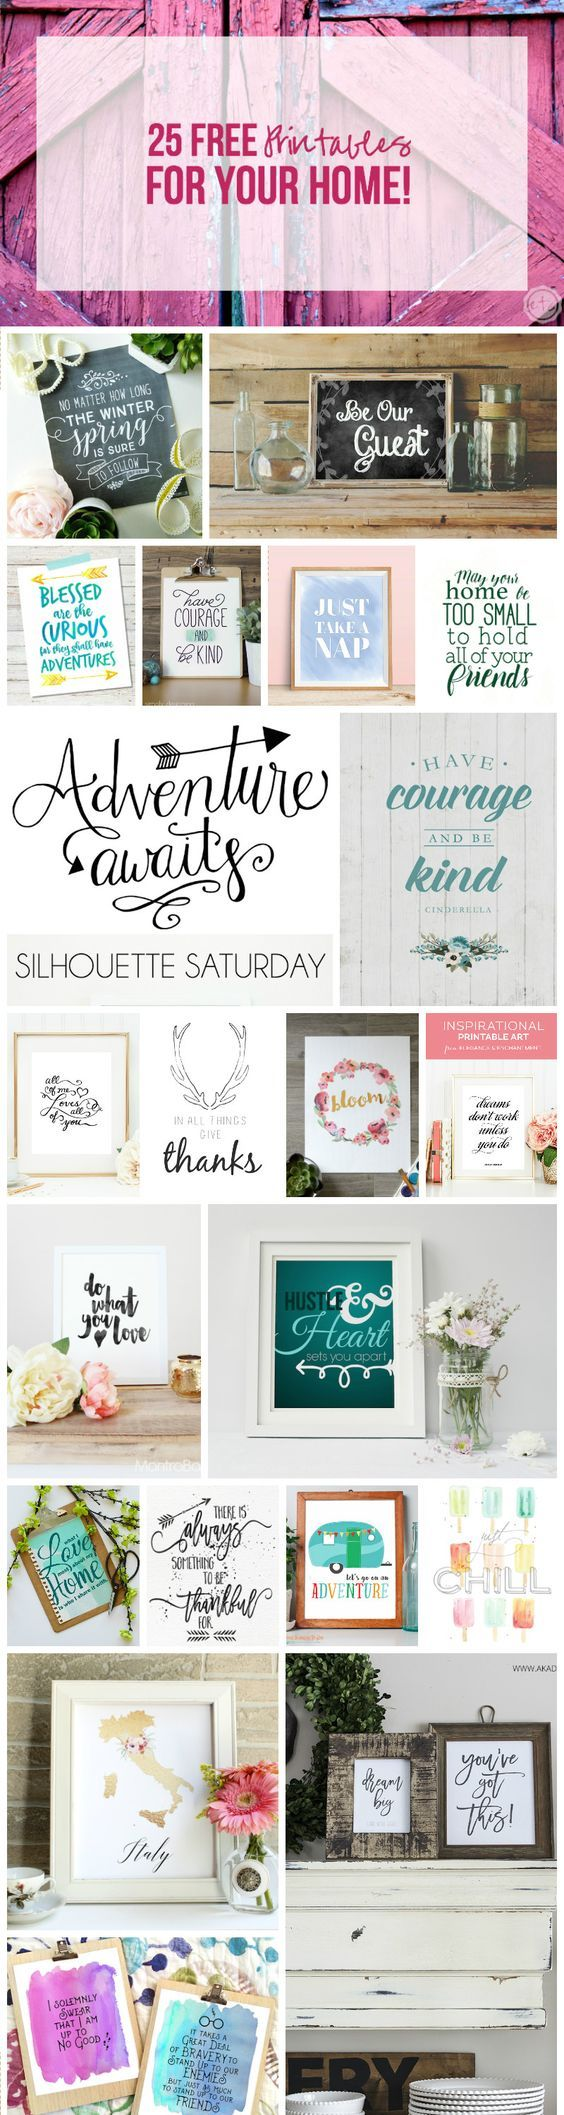 25 FREE Printables For Your Home 1886